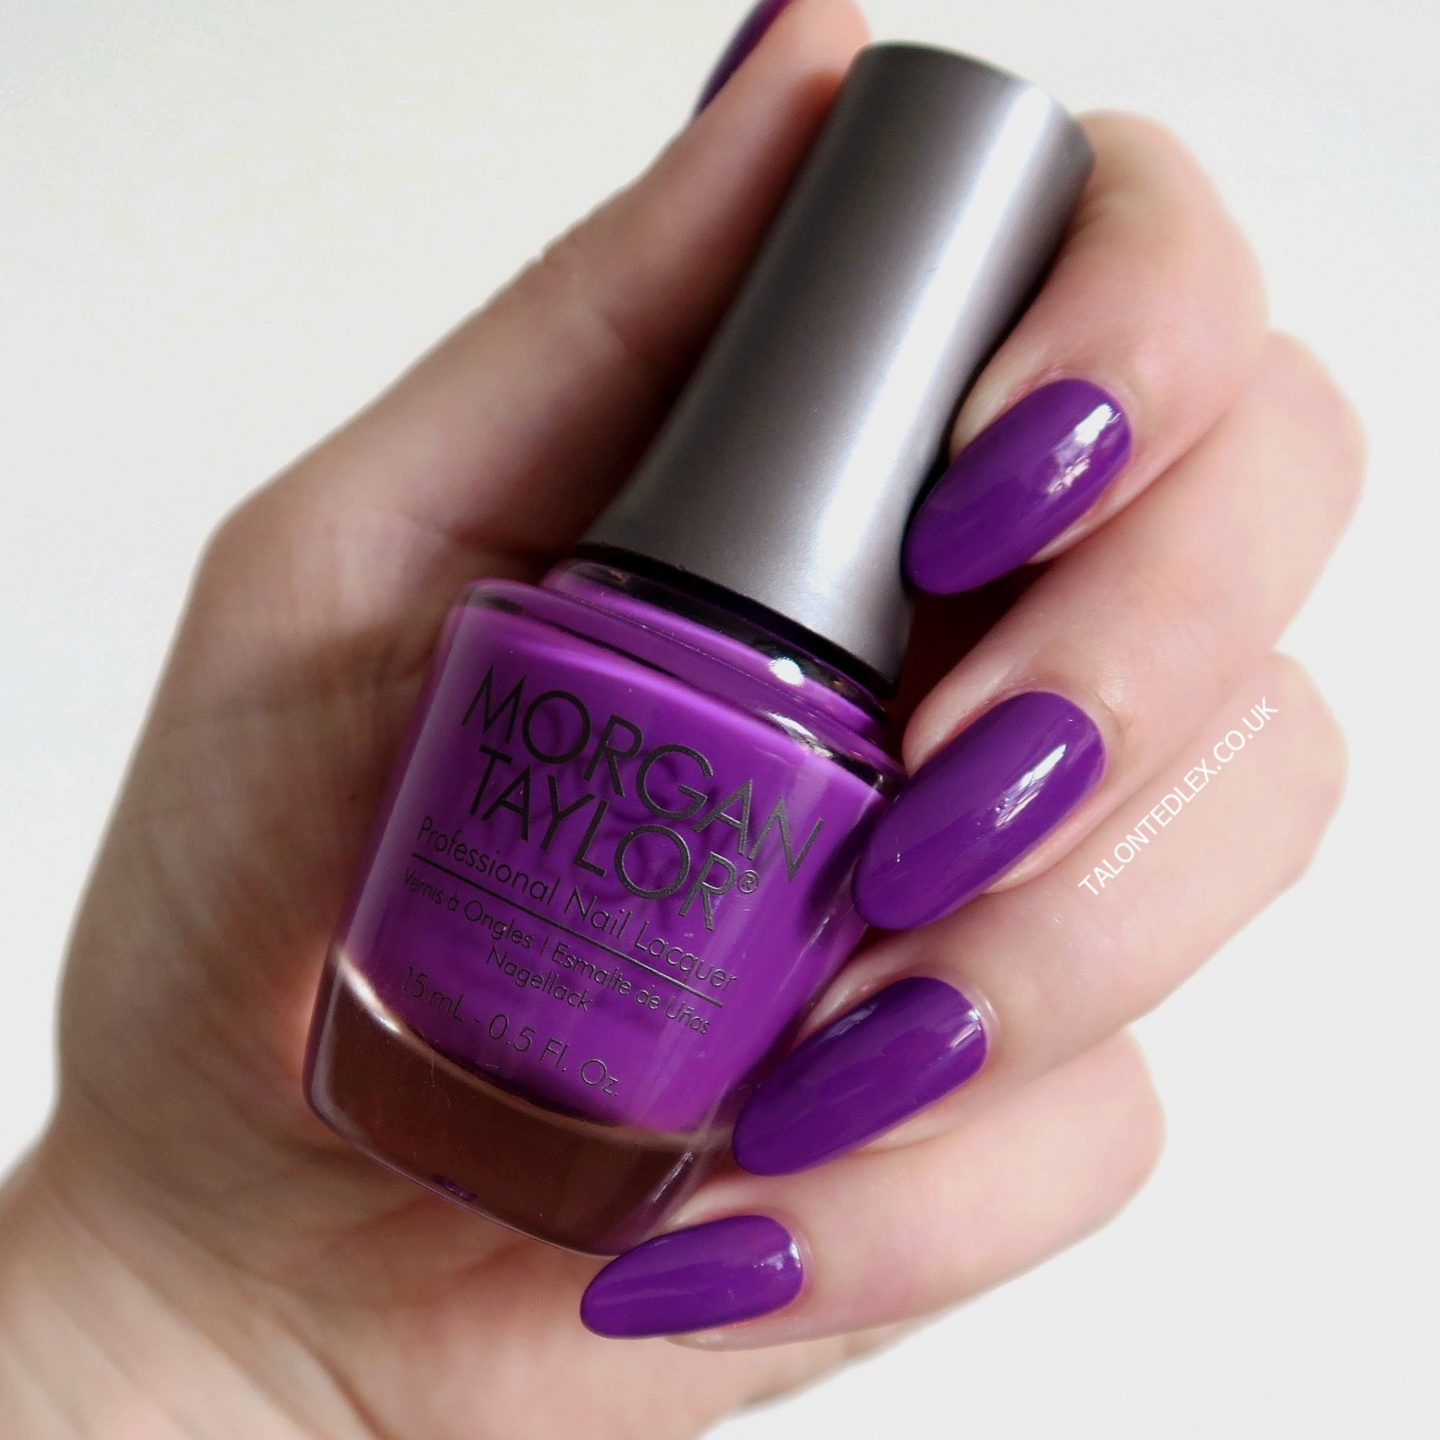 Repin and click to see the full Morgan Taylor Rocketman collection, including 'Just Me & My Piano' - a purple creme polish. New Morgan Taylor nail polish range. #talontedlex #morgantaylor #purplenails